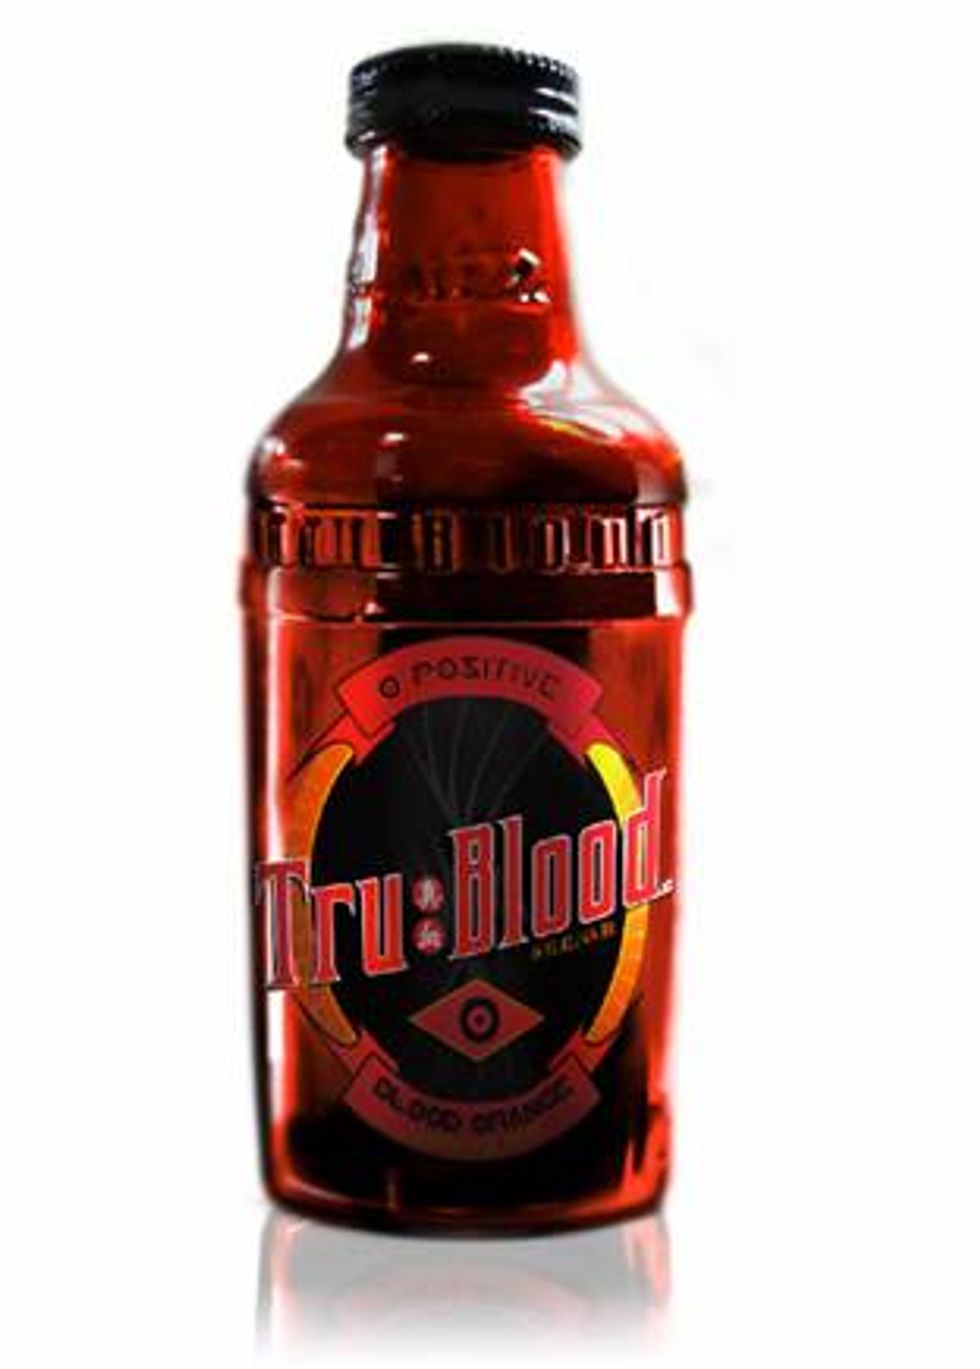 Eight Items or Less: Tru Blood, Butterbeer, and Other Fictional Beverages